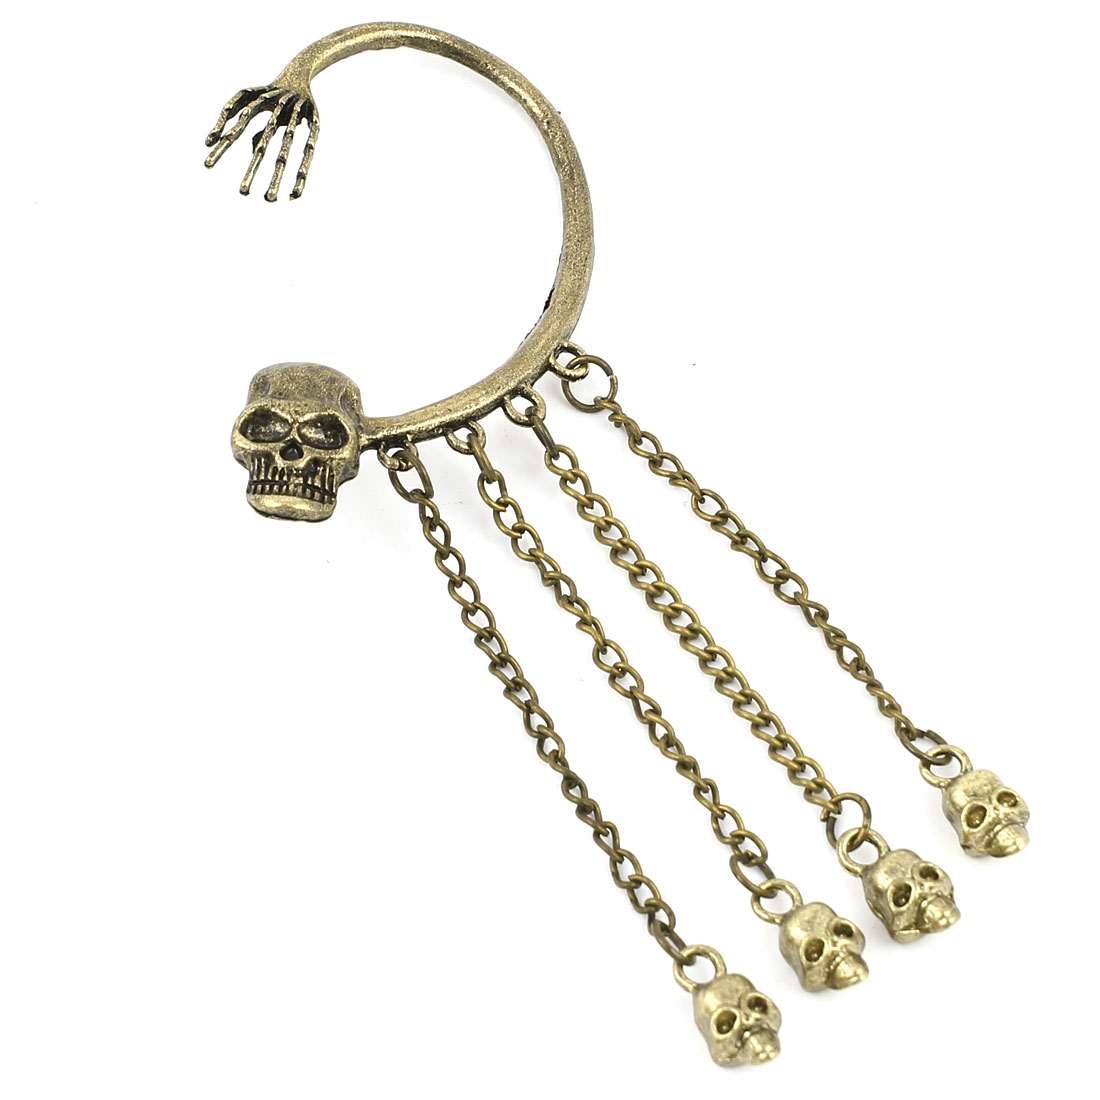 Bronze Tone Metal Skull Shape Chain Pendant Left Ear Drop Cuff Earring for Lady